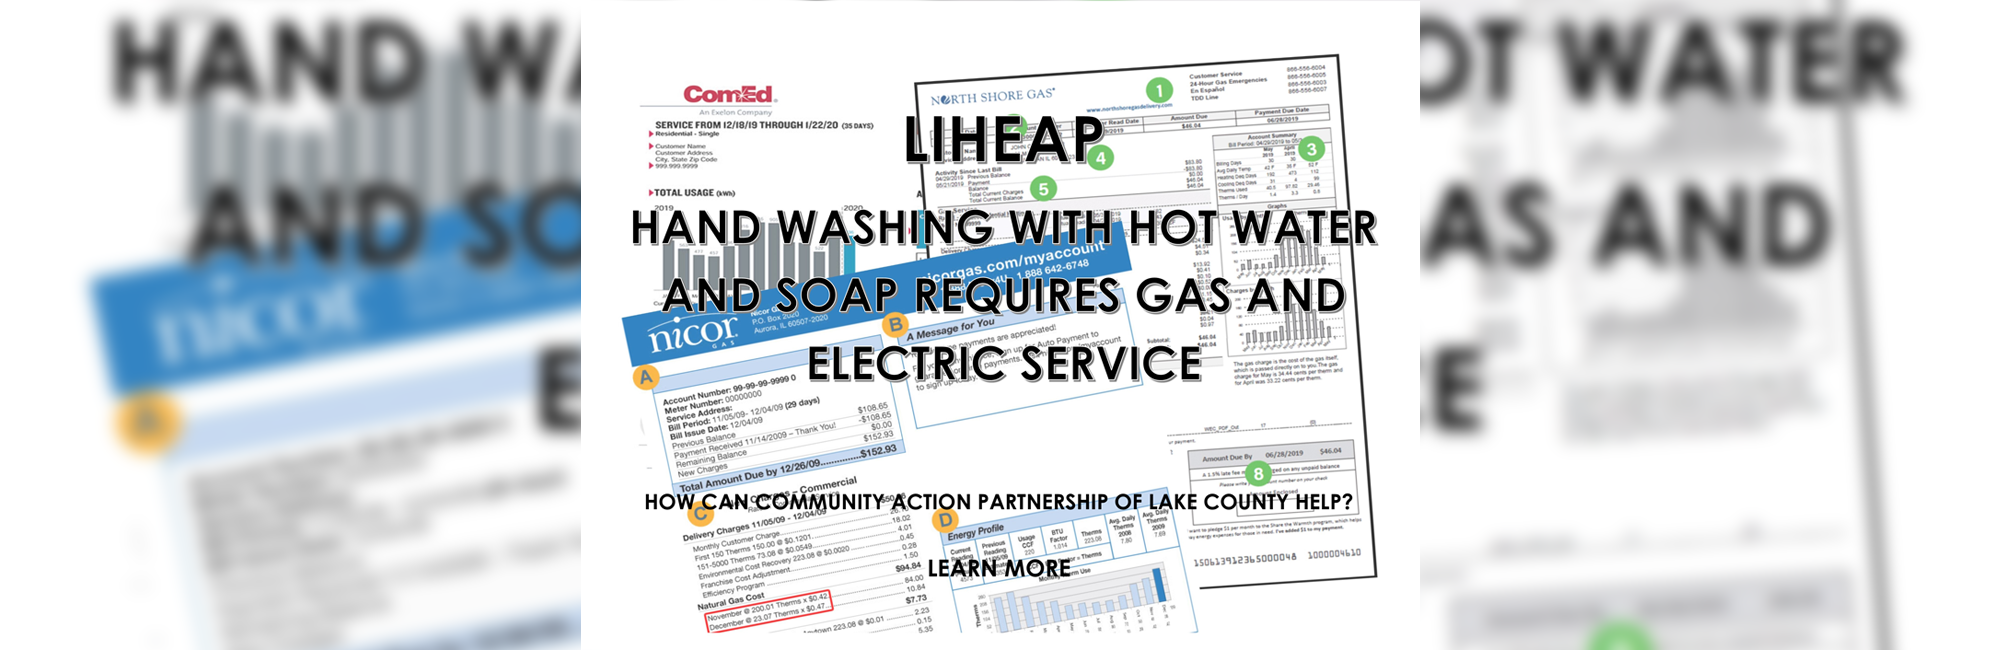 Hand Washing with Hot Water and Soap Requires Gas and Electric Service